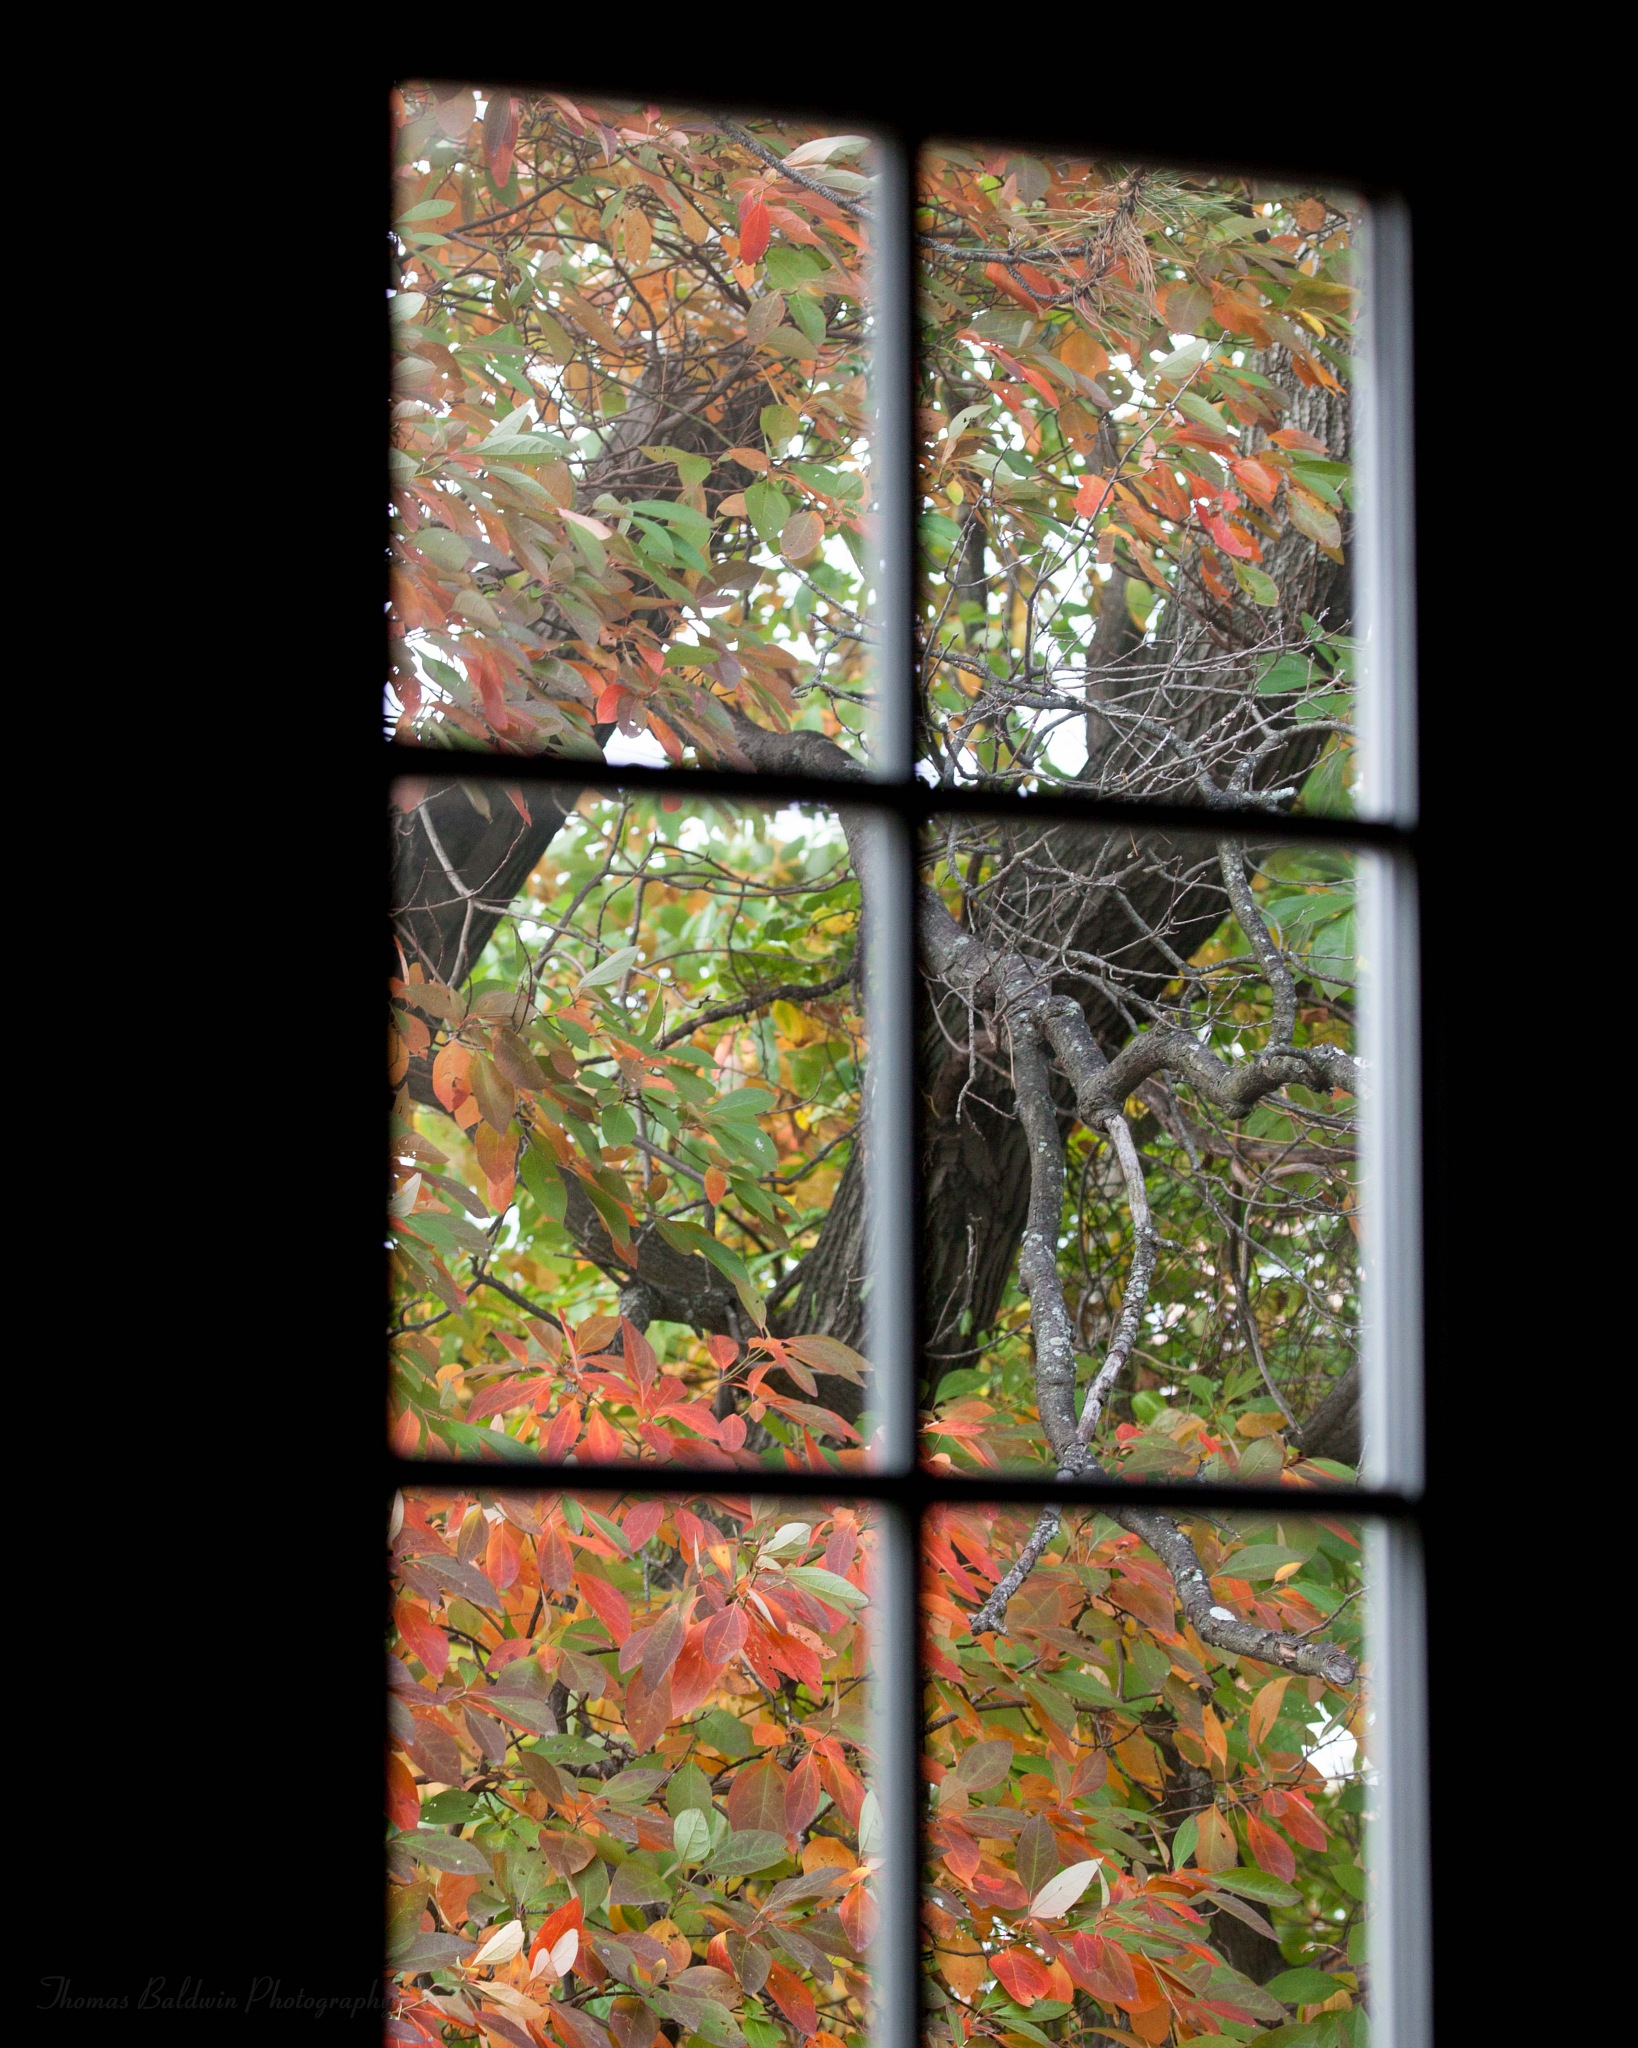 Autumn From Inside by Thomas Baldwin